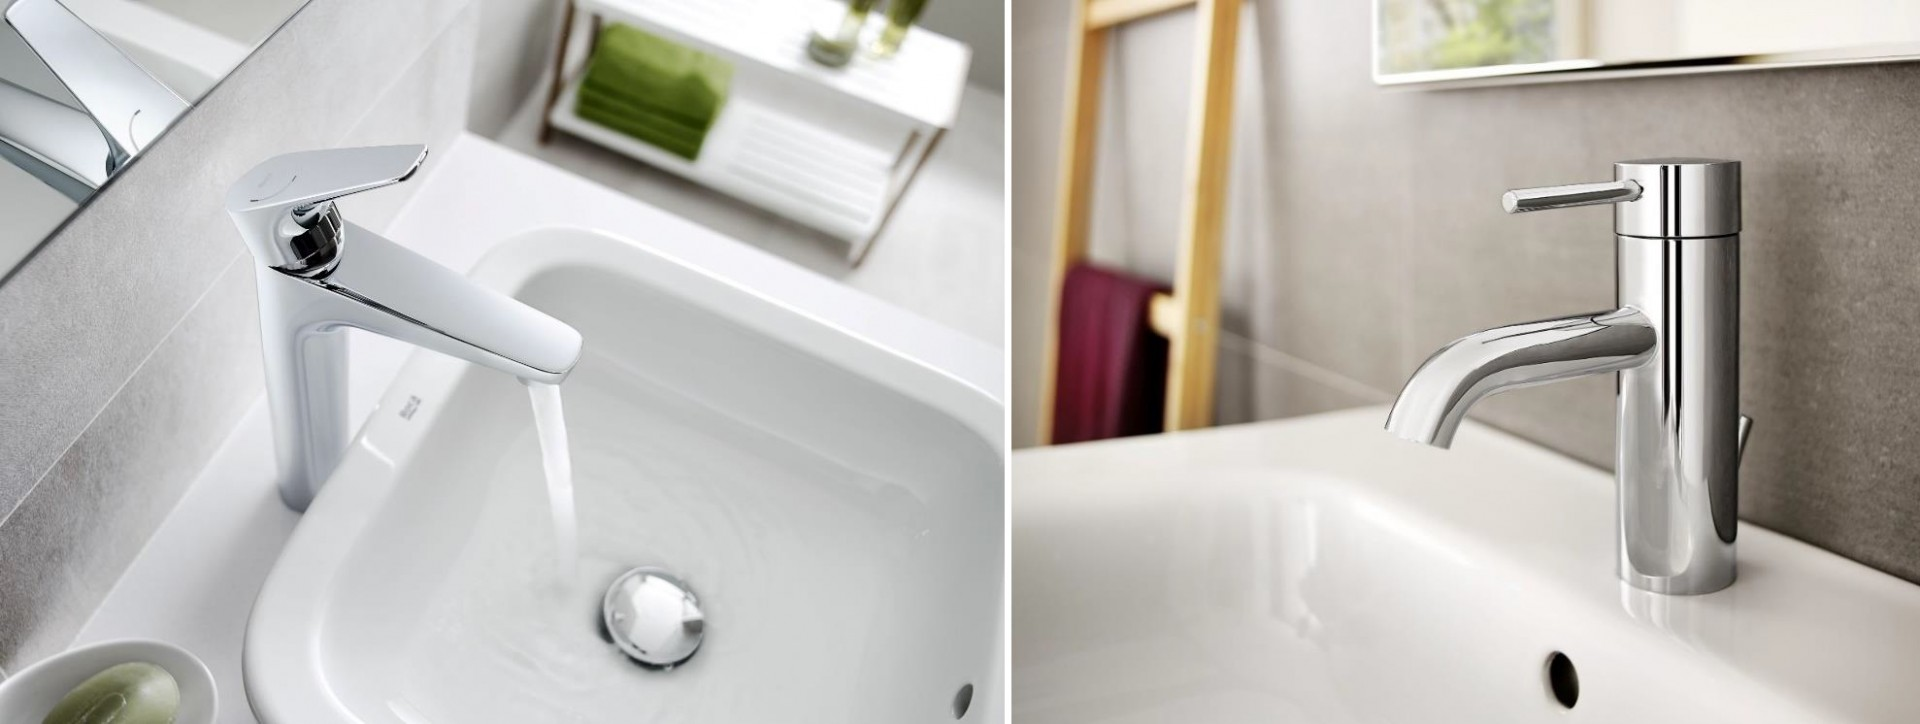 Product Spotlight: Roca brassware - Atlas and Lanta